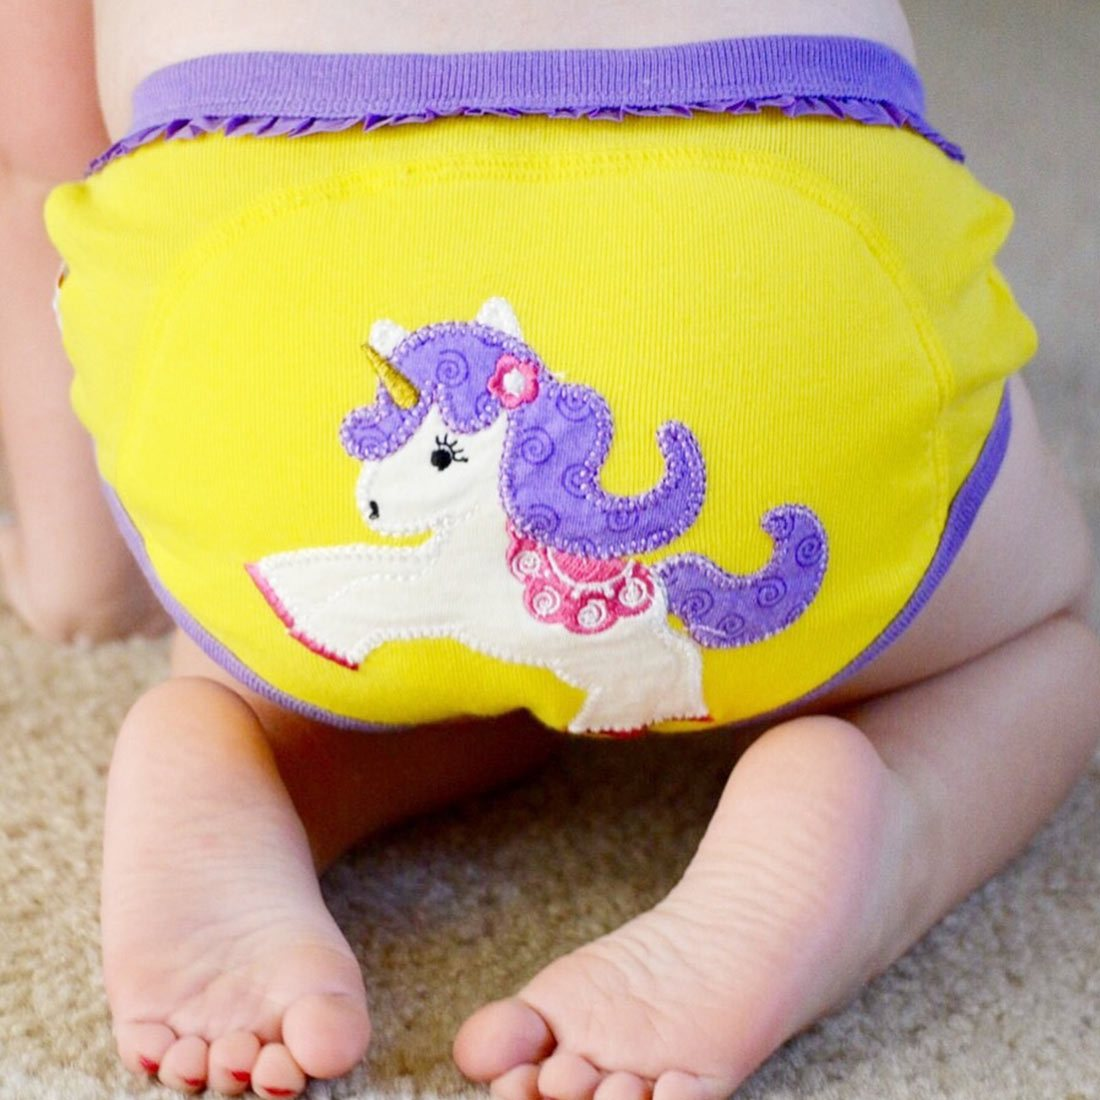 ZOOCCHINI Girls 3 Piece Organic Potty Training Pants Set - Fairy Tails